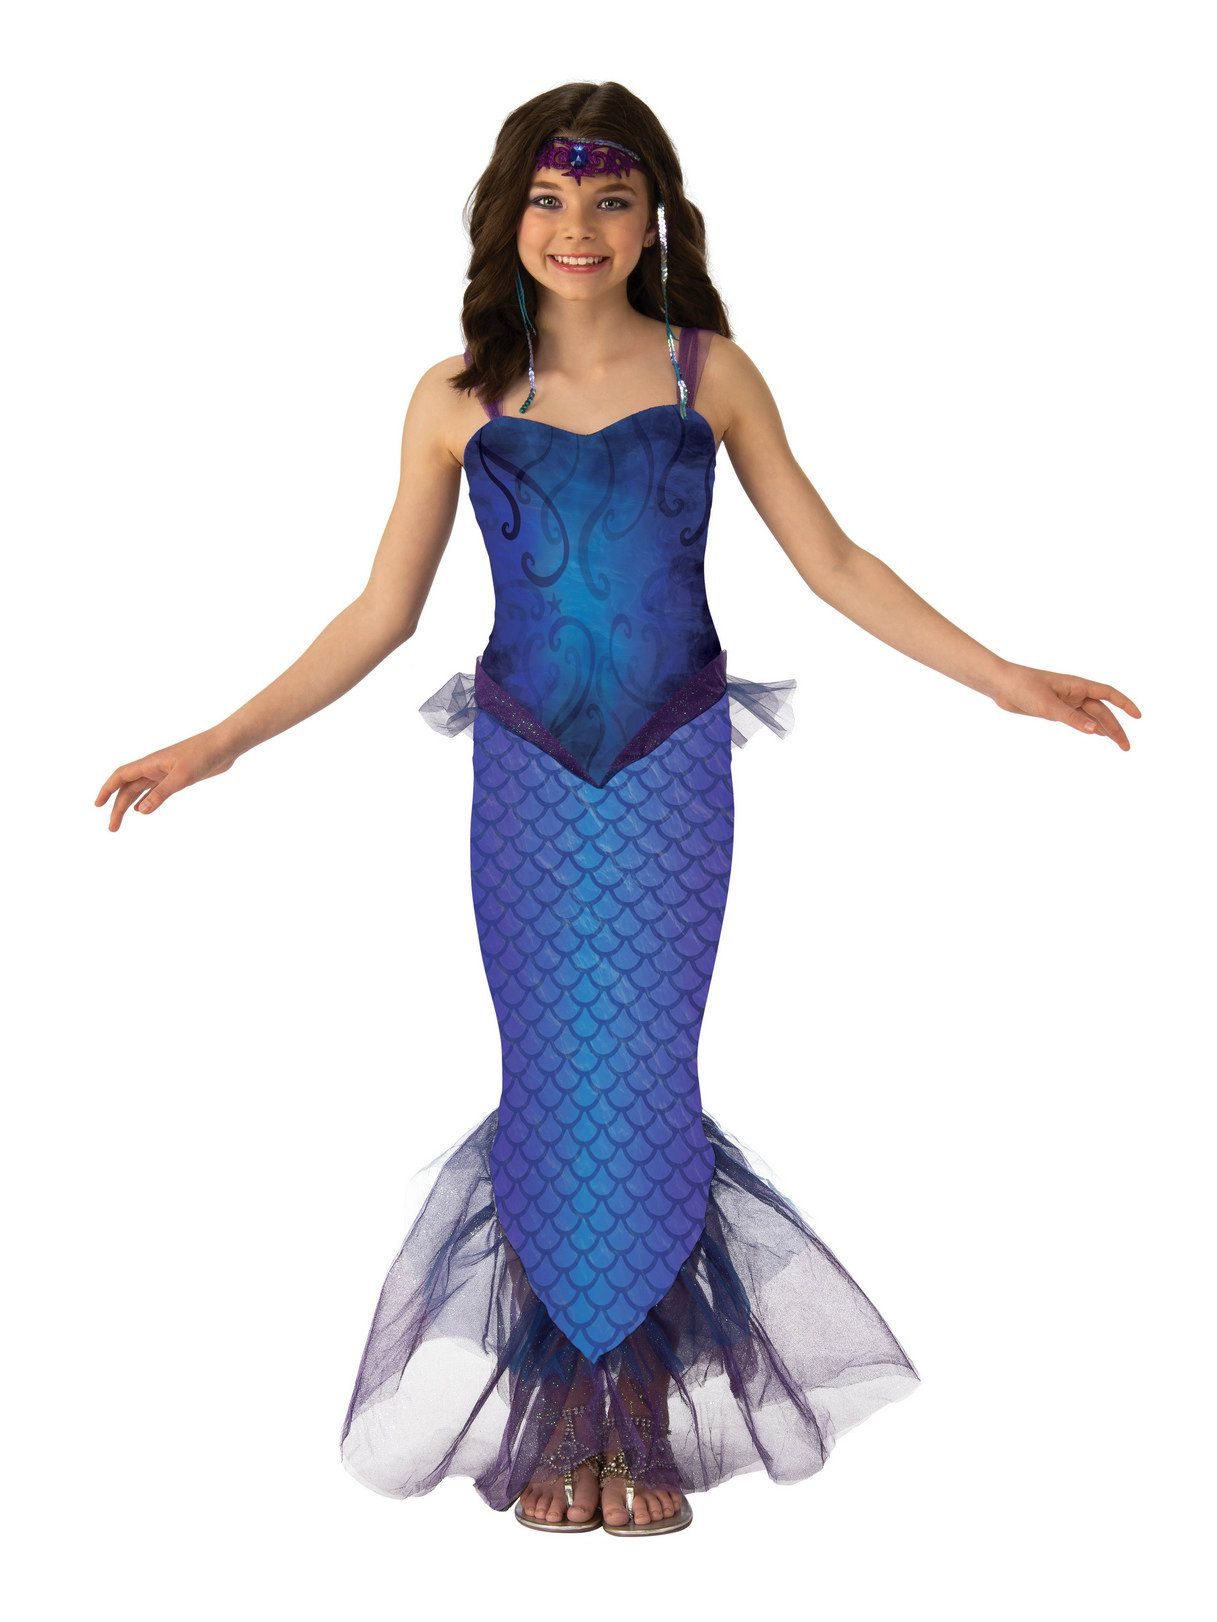 961fd23046ad Mysterious Mermaid Costume for Girls - Girls 2018 Halloween Costumes ...